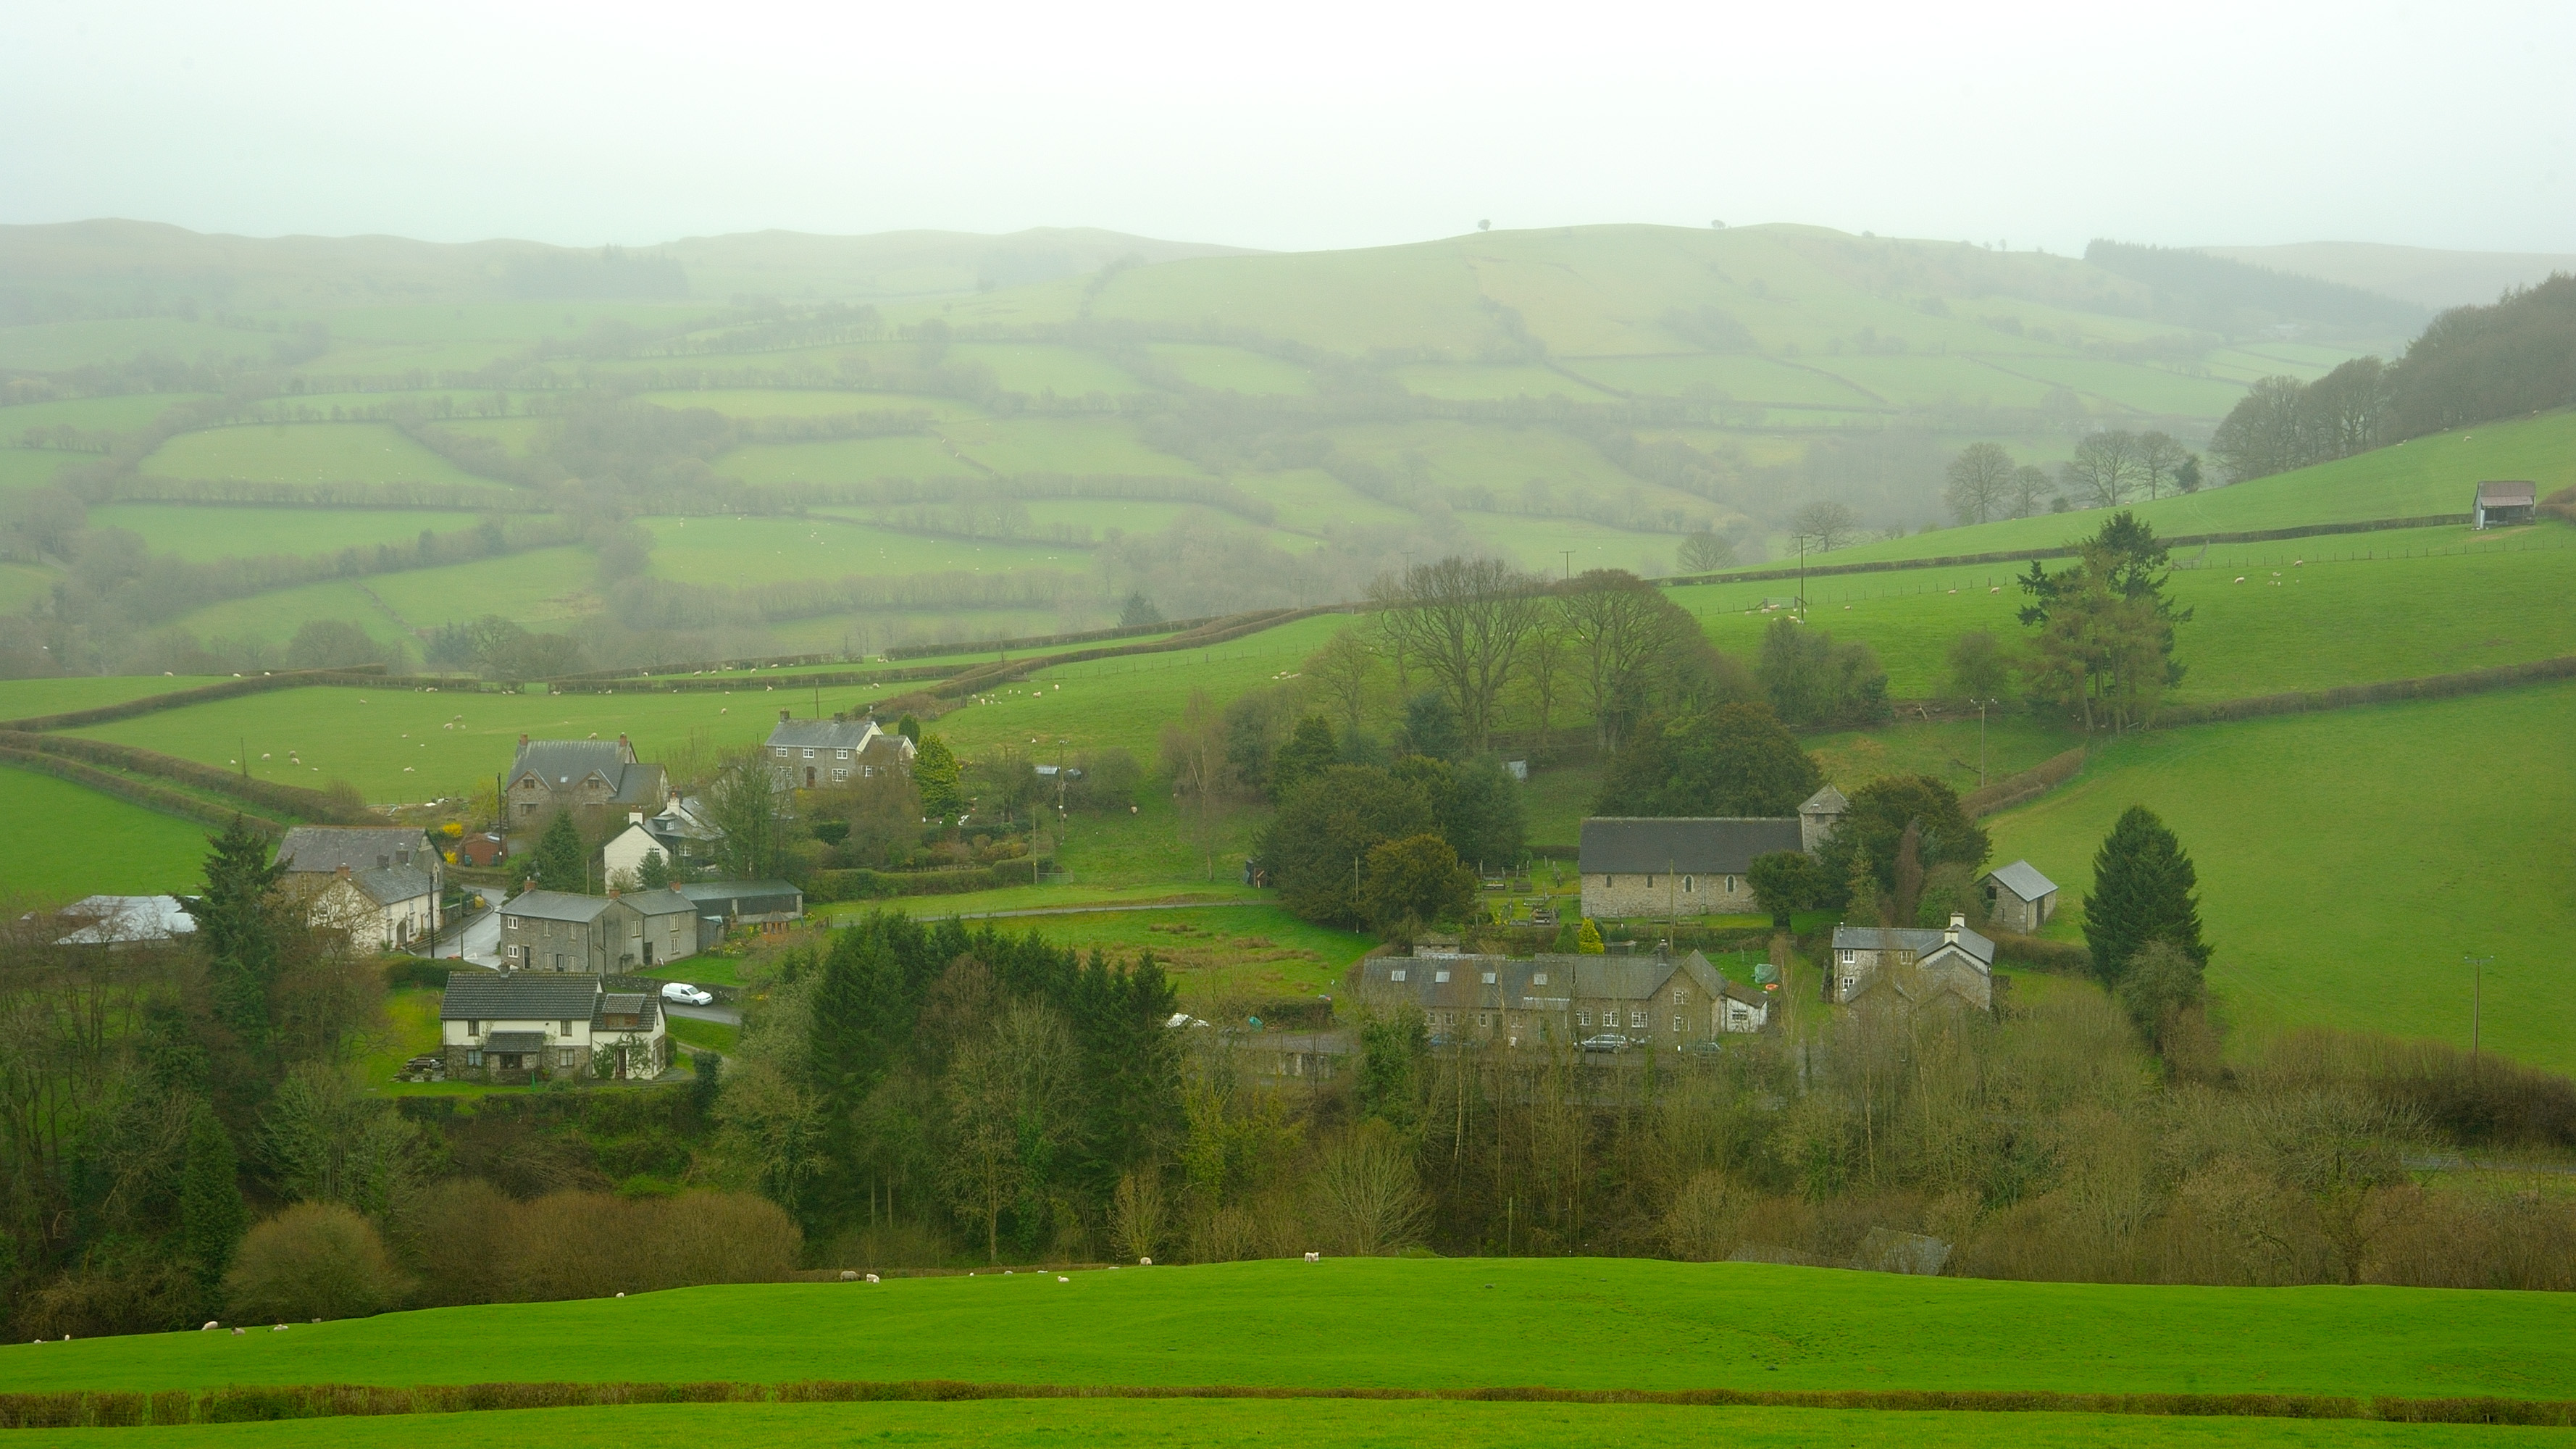 Image of the village of Gwenddwr. Permission granted by the owner of the website Radnorshire Images (John Crellin).